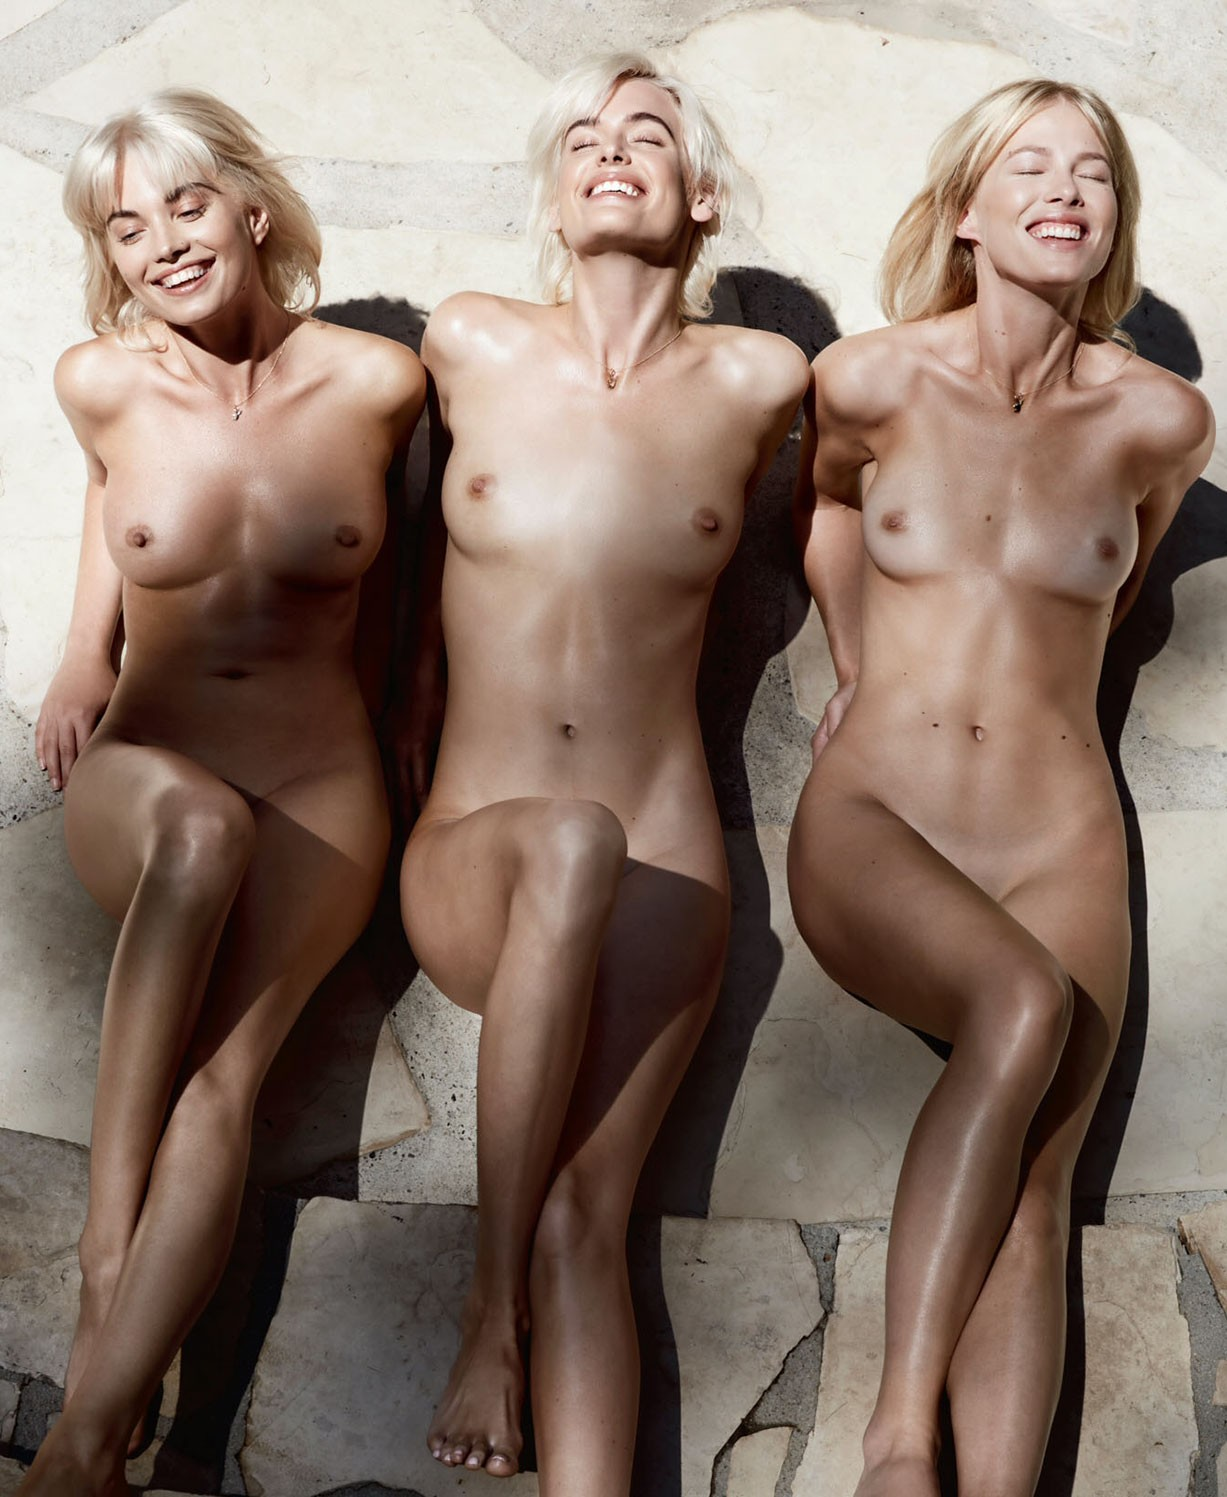 Taylor Bagley, Sydney Roper and Terra Jo Wallace by Jennifer Stenglein - Playboy US november-december 2017